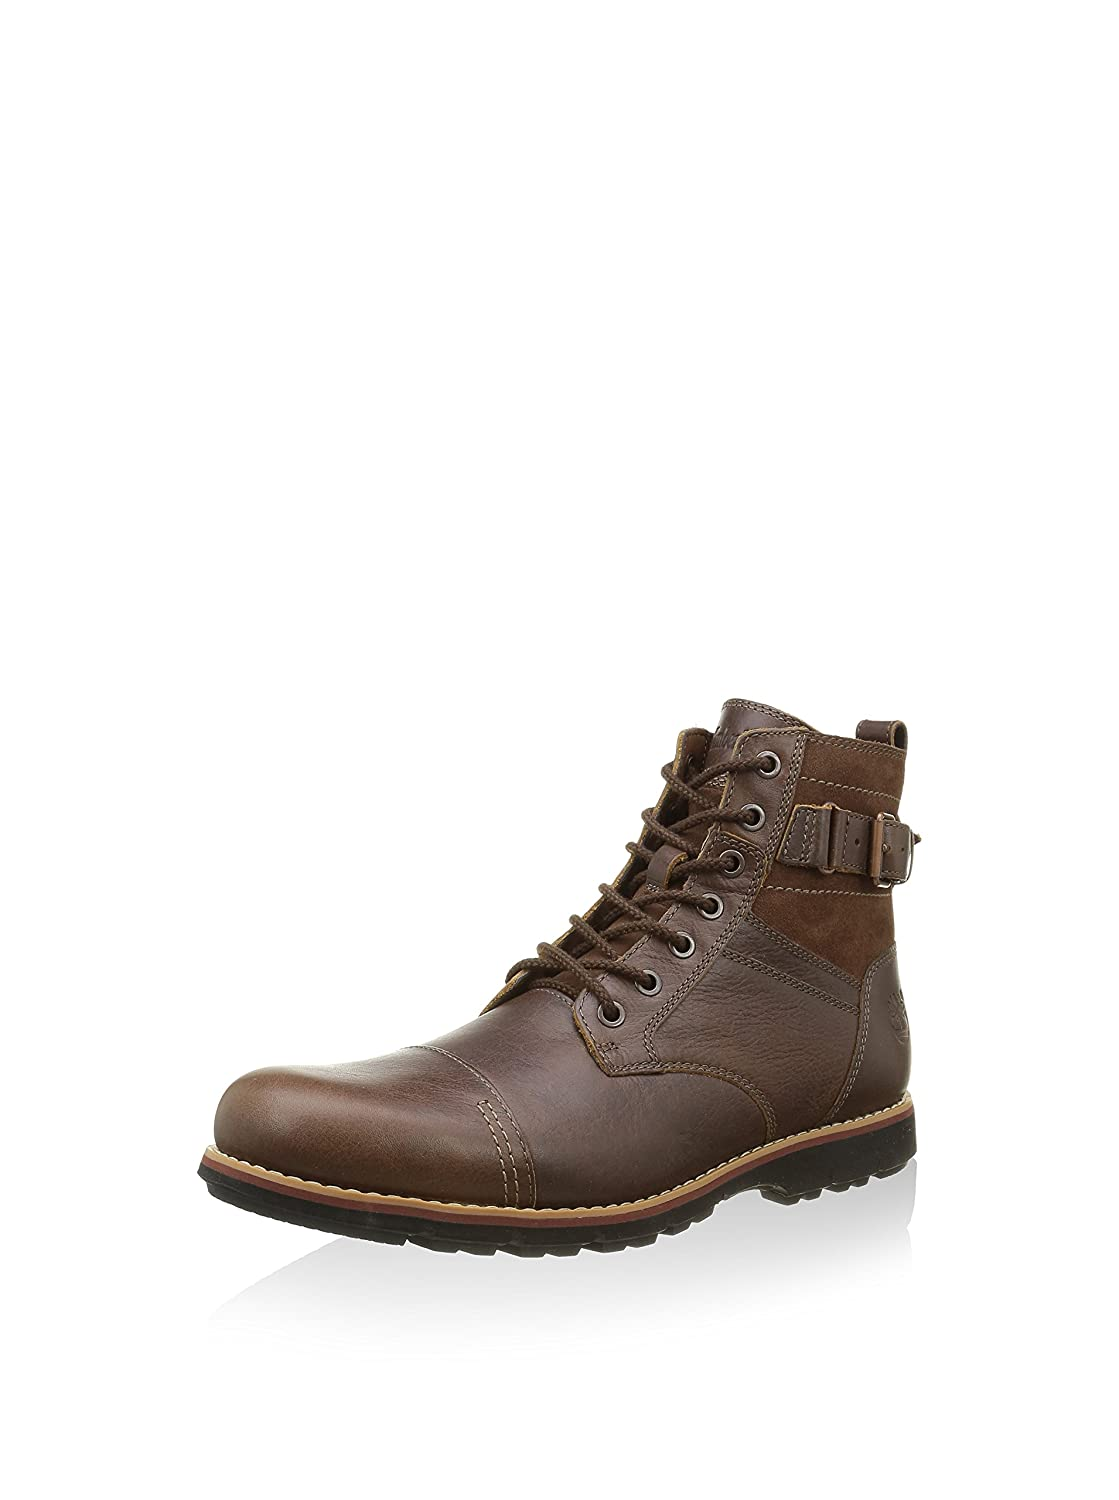 Chaussures Pour Homme Timberland Bottines Boots Brewstah